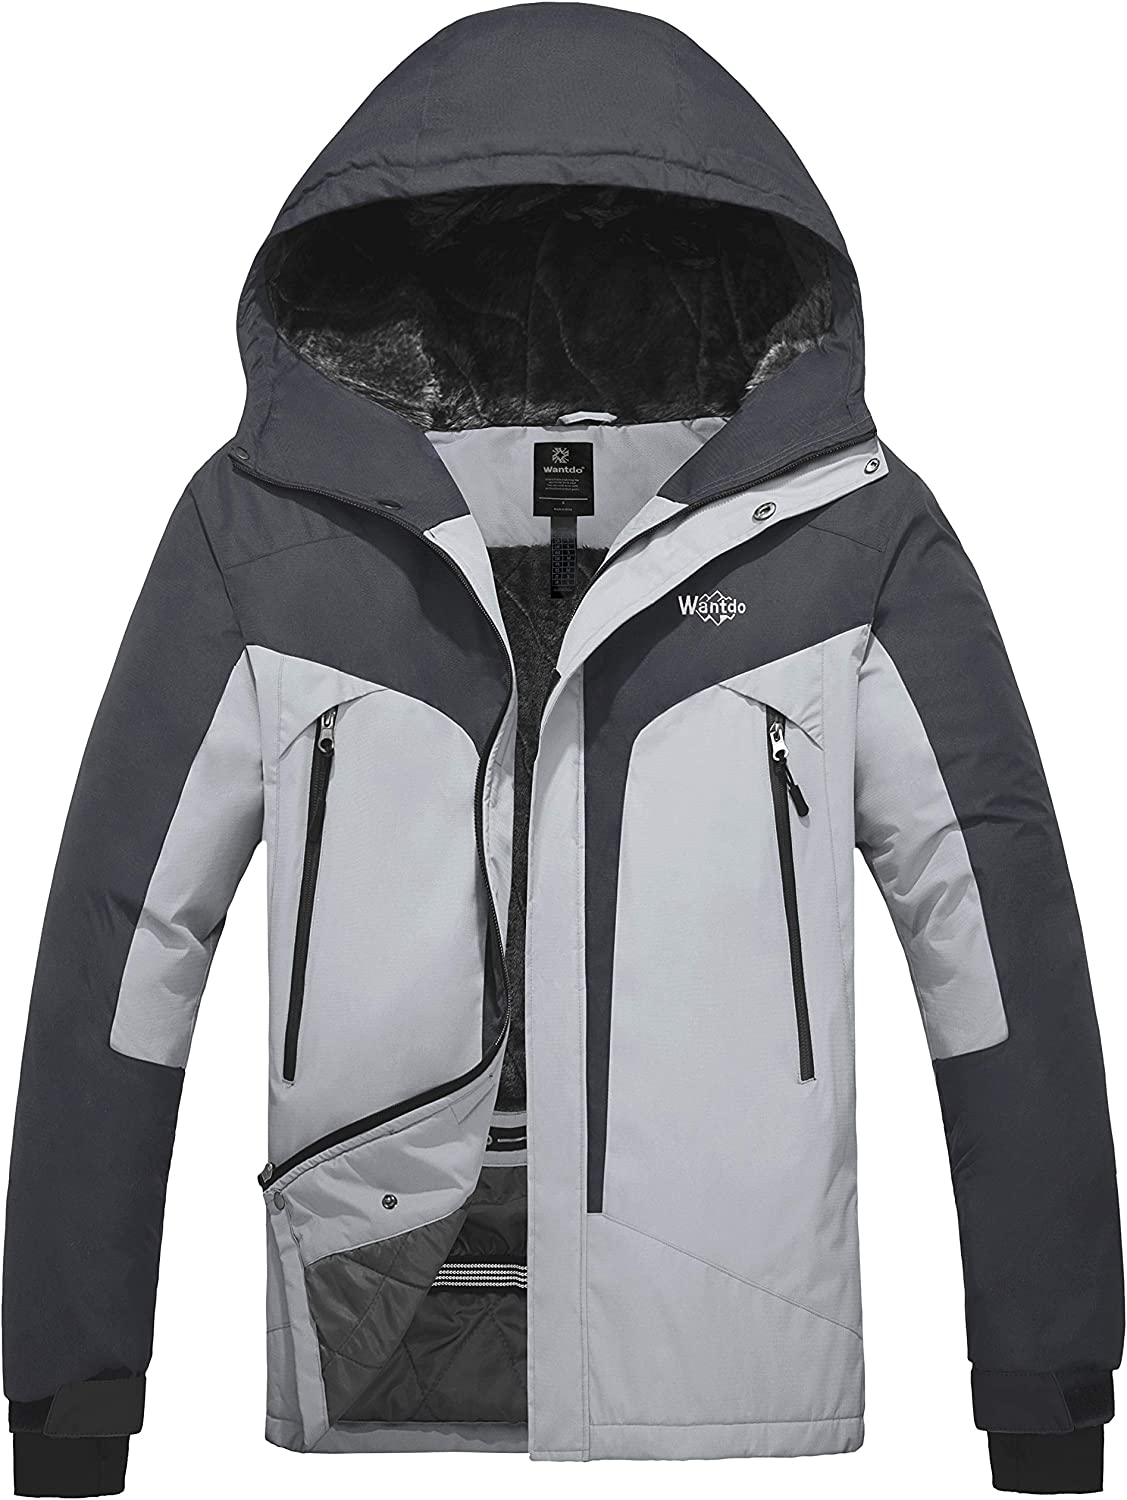 Wantdo Men's Waterproof Snowboard Jacket Windproof Mountain Winter Ski Snow Coat